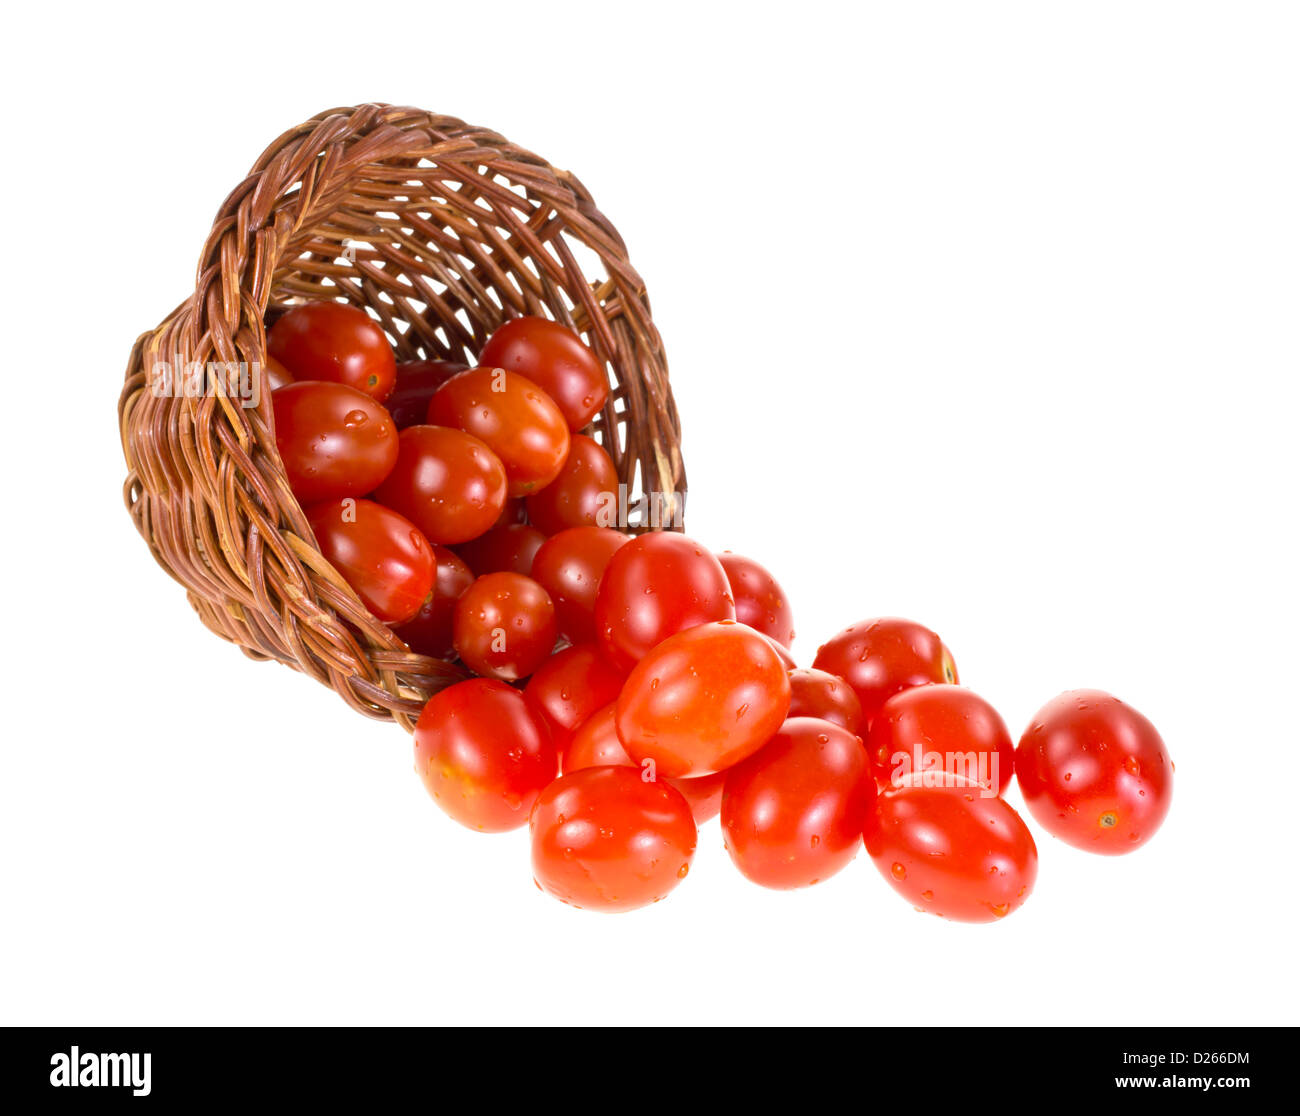 Several small grape tomatoes spilling from a wicker basket onto a white background. - Stock Image